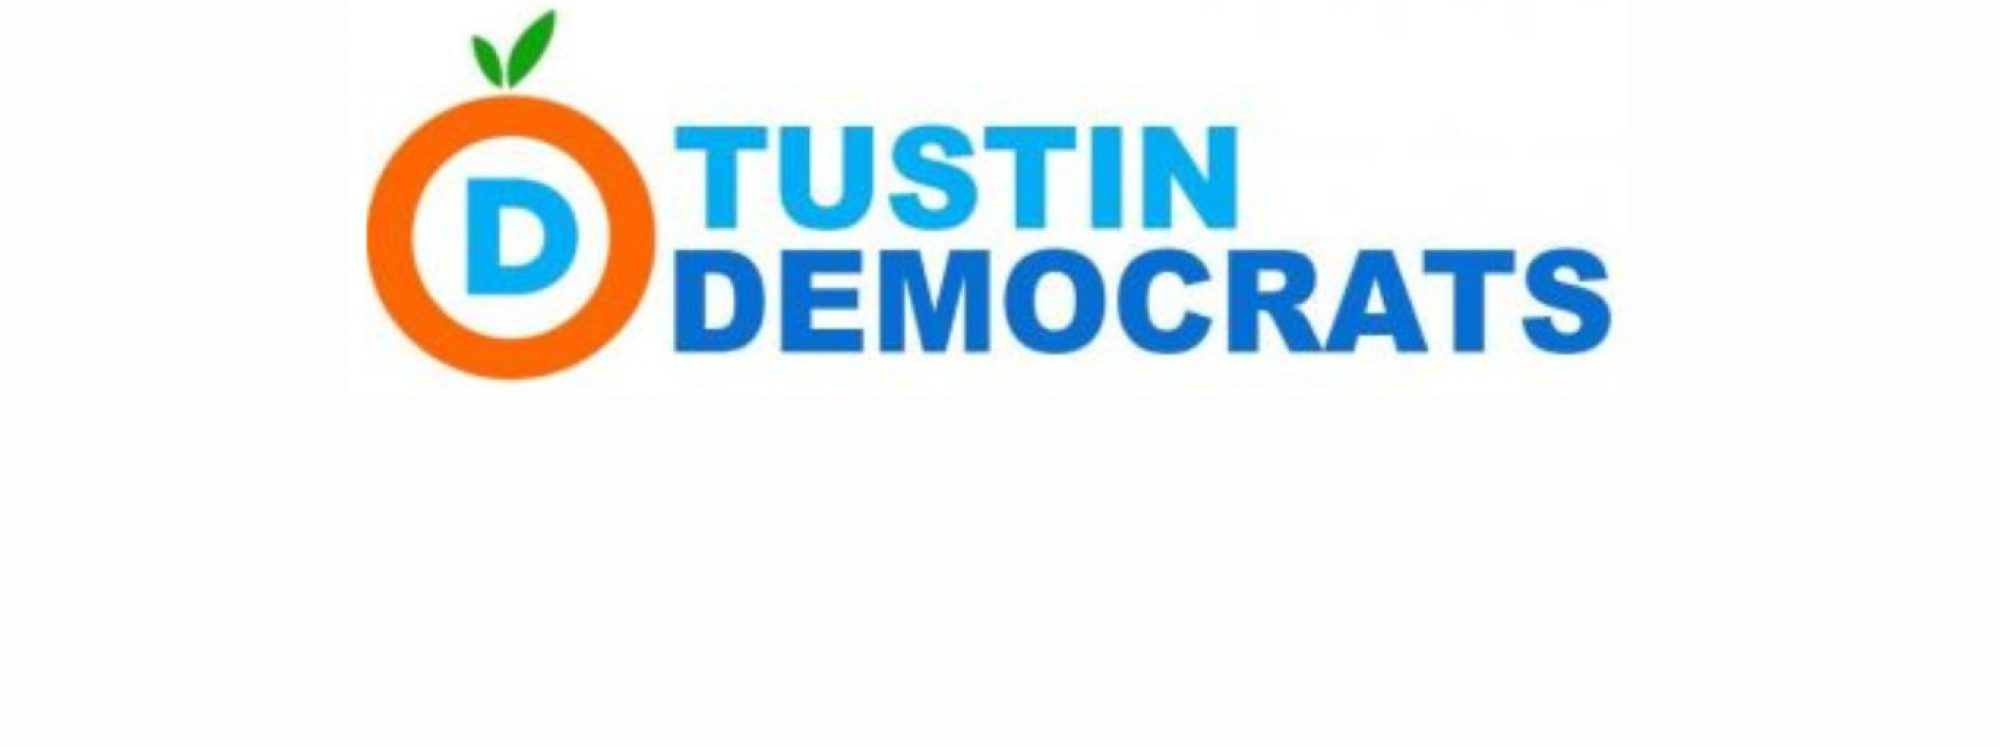 The Tustin Democratic Club